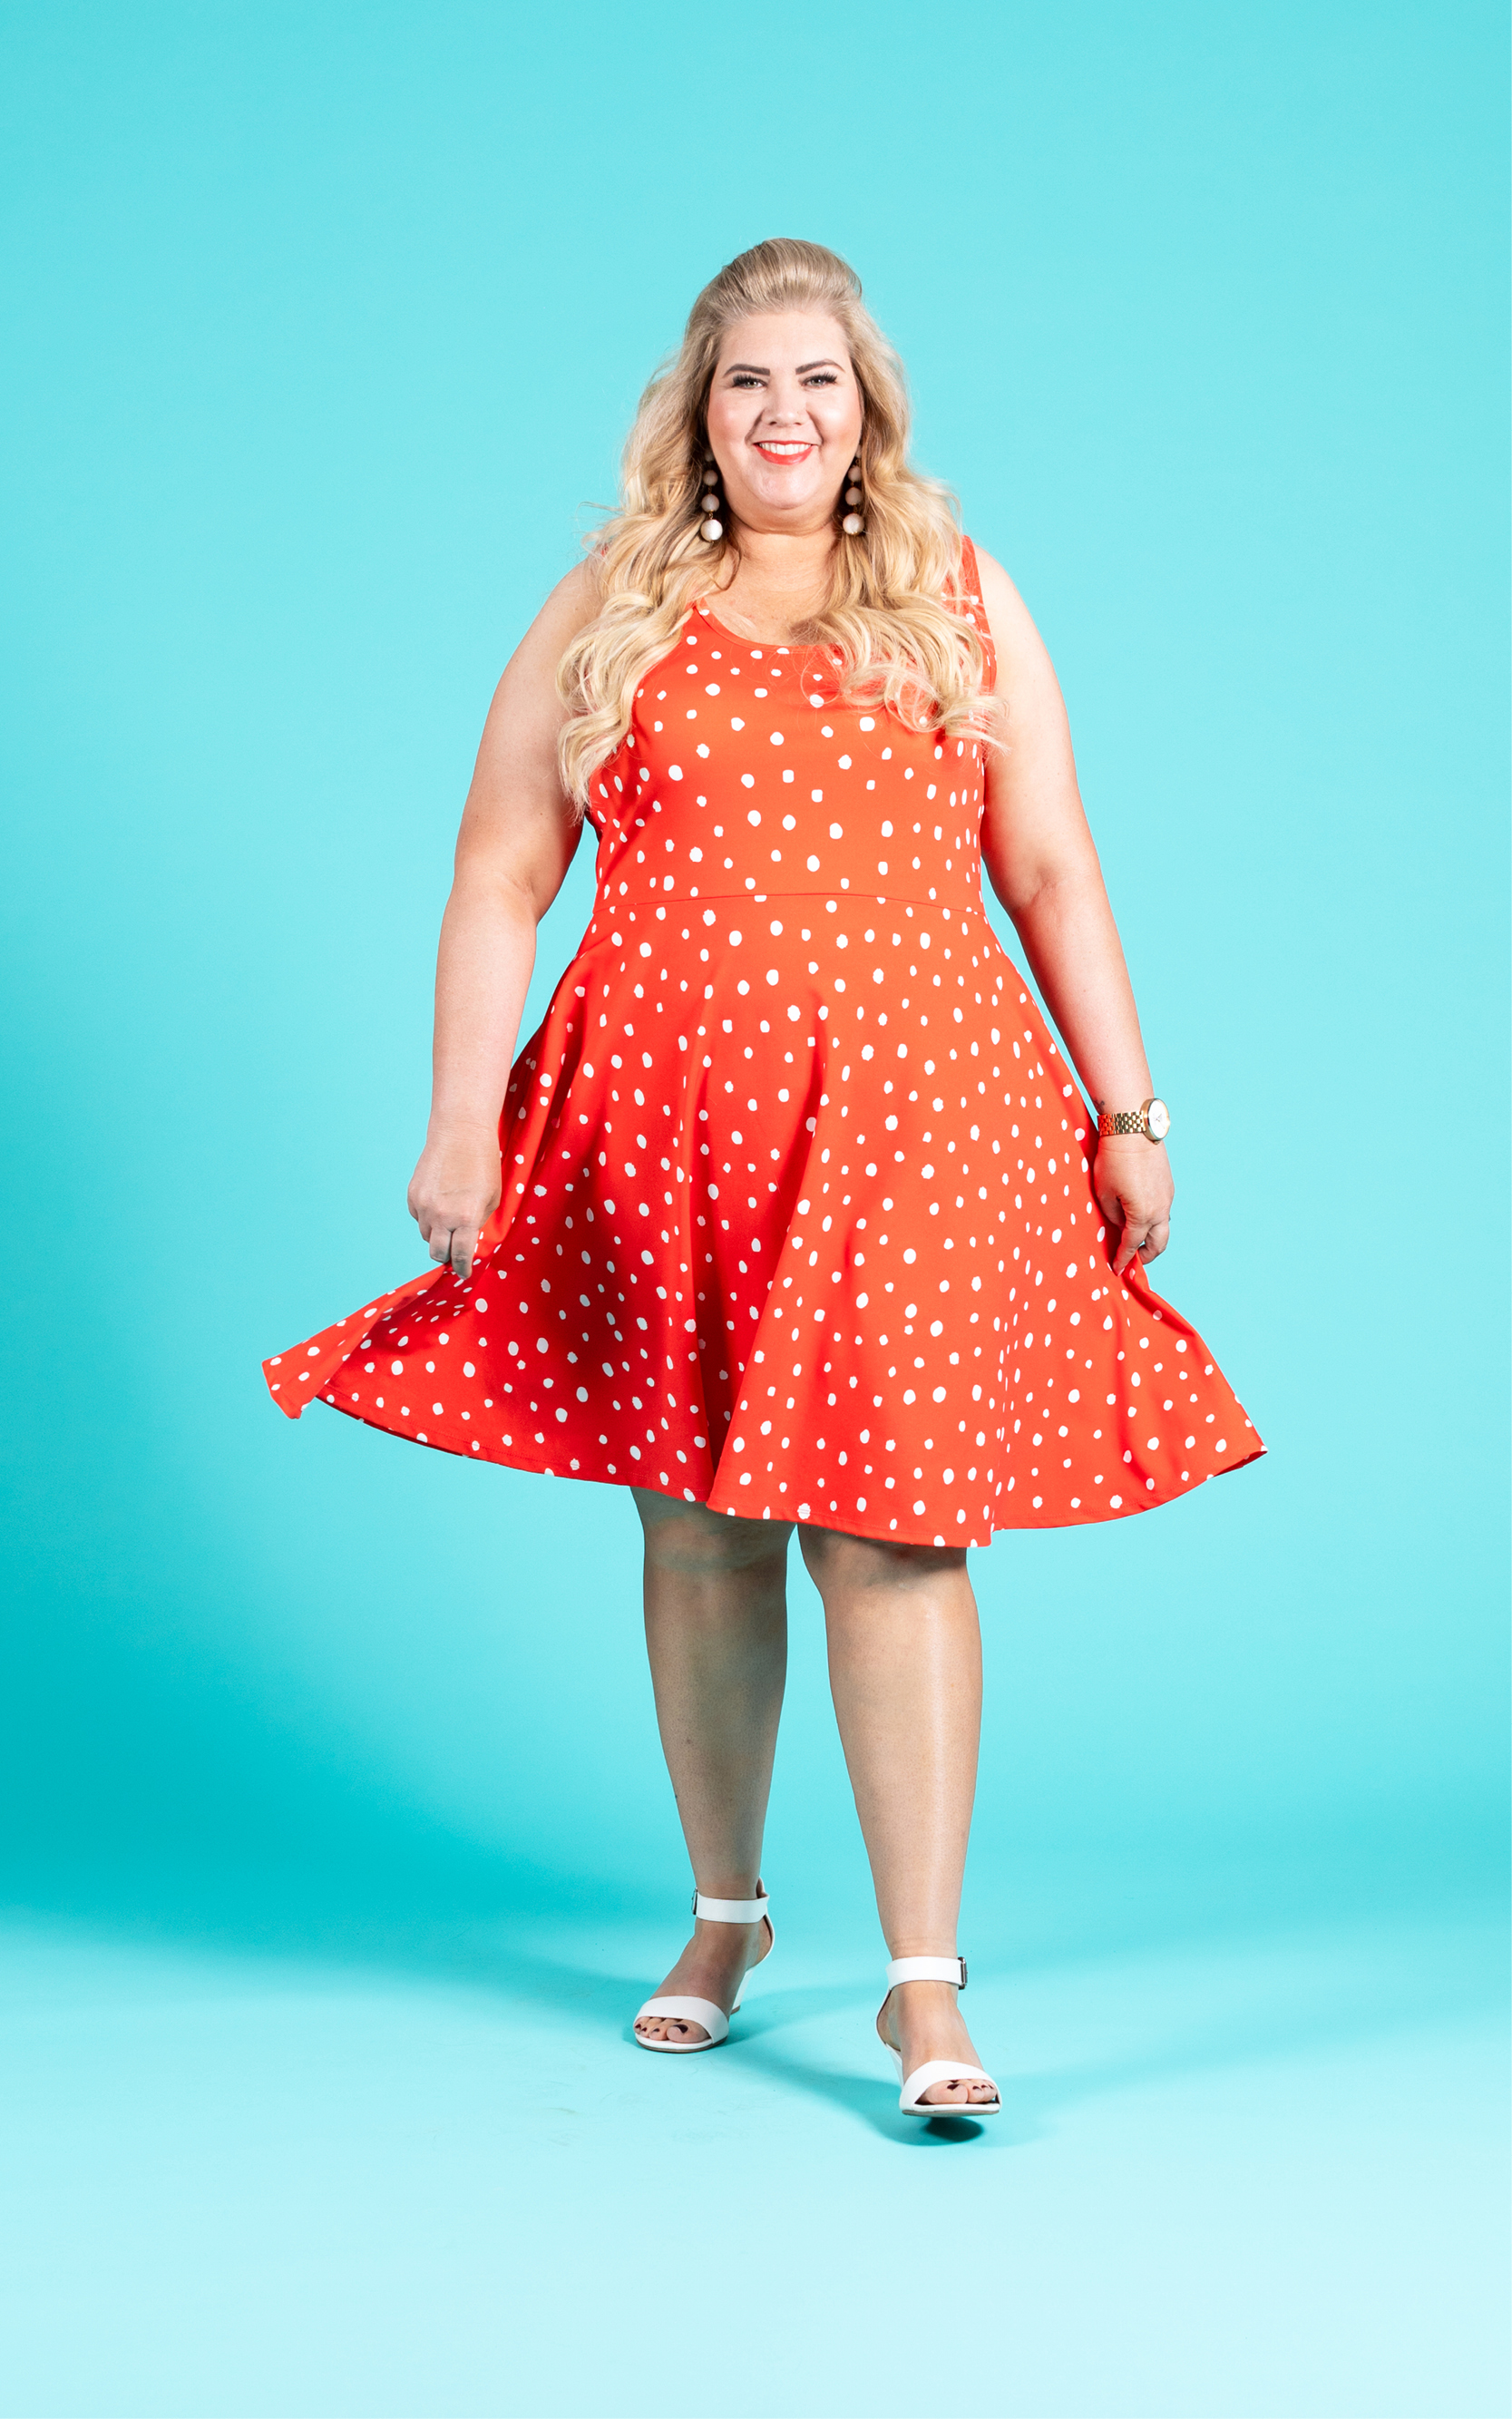 LULAROE-SLEEVELESS-DRESS-NICKI-A LINE SKIRT-RED POLKA DOTS.jpg